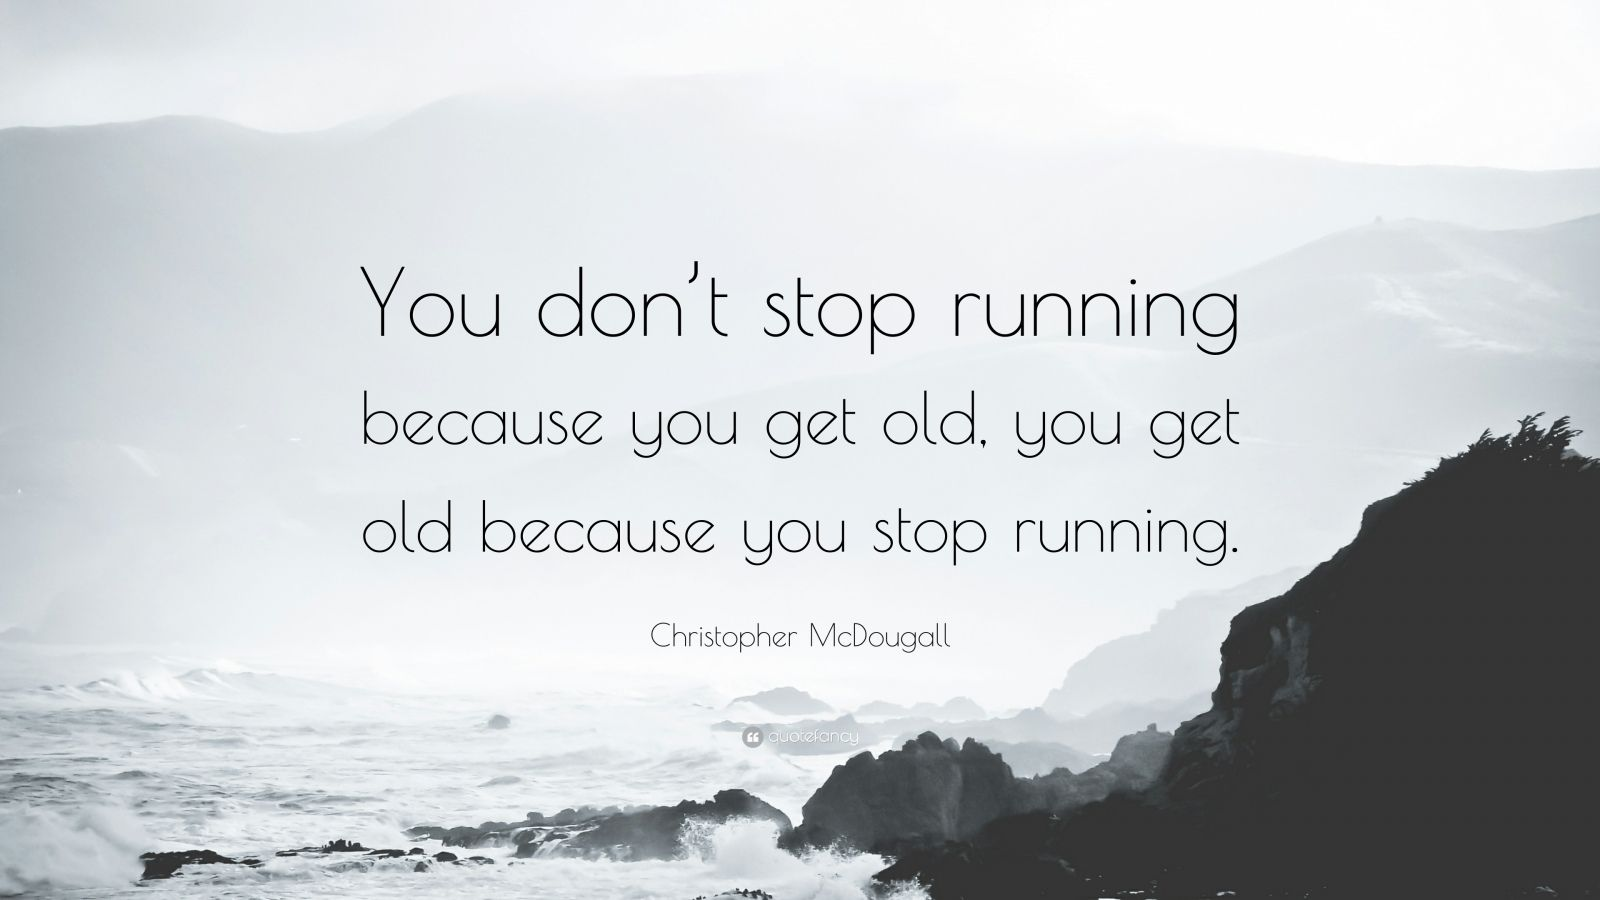 "Running Quotes: ""You don't stop running because you get old, you get old because you stop running."" — Christopher McDougall"